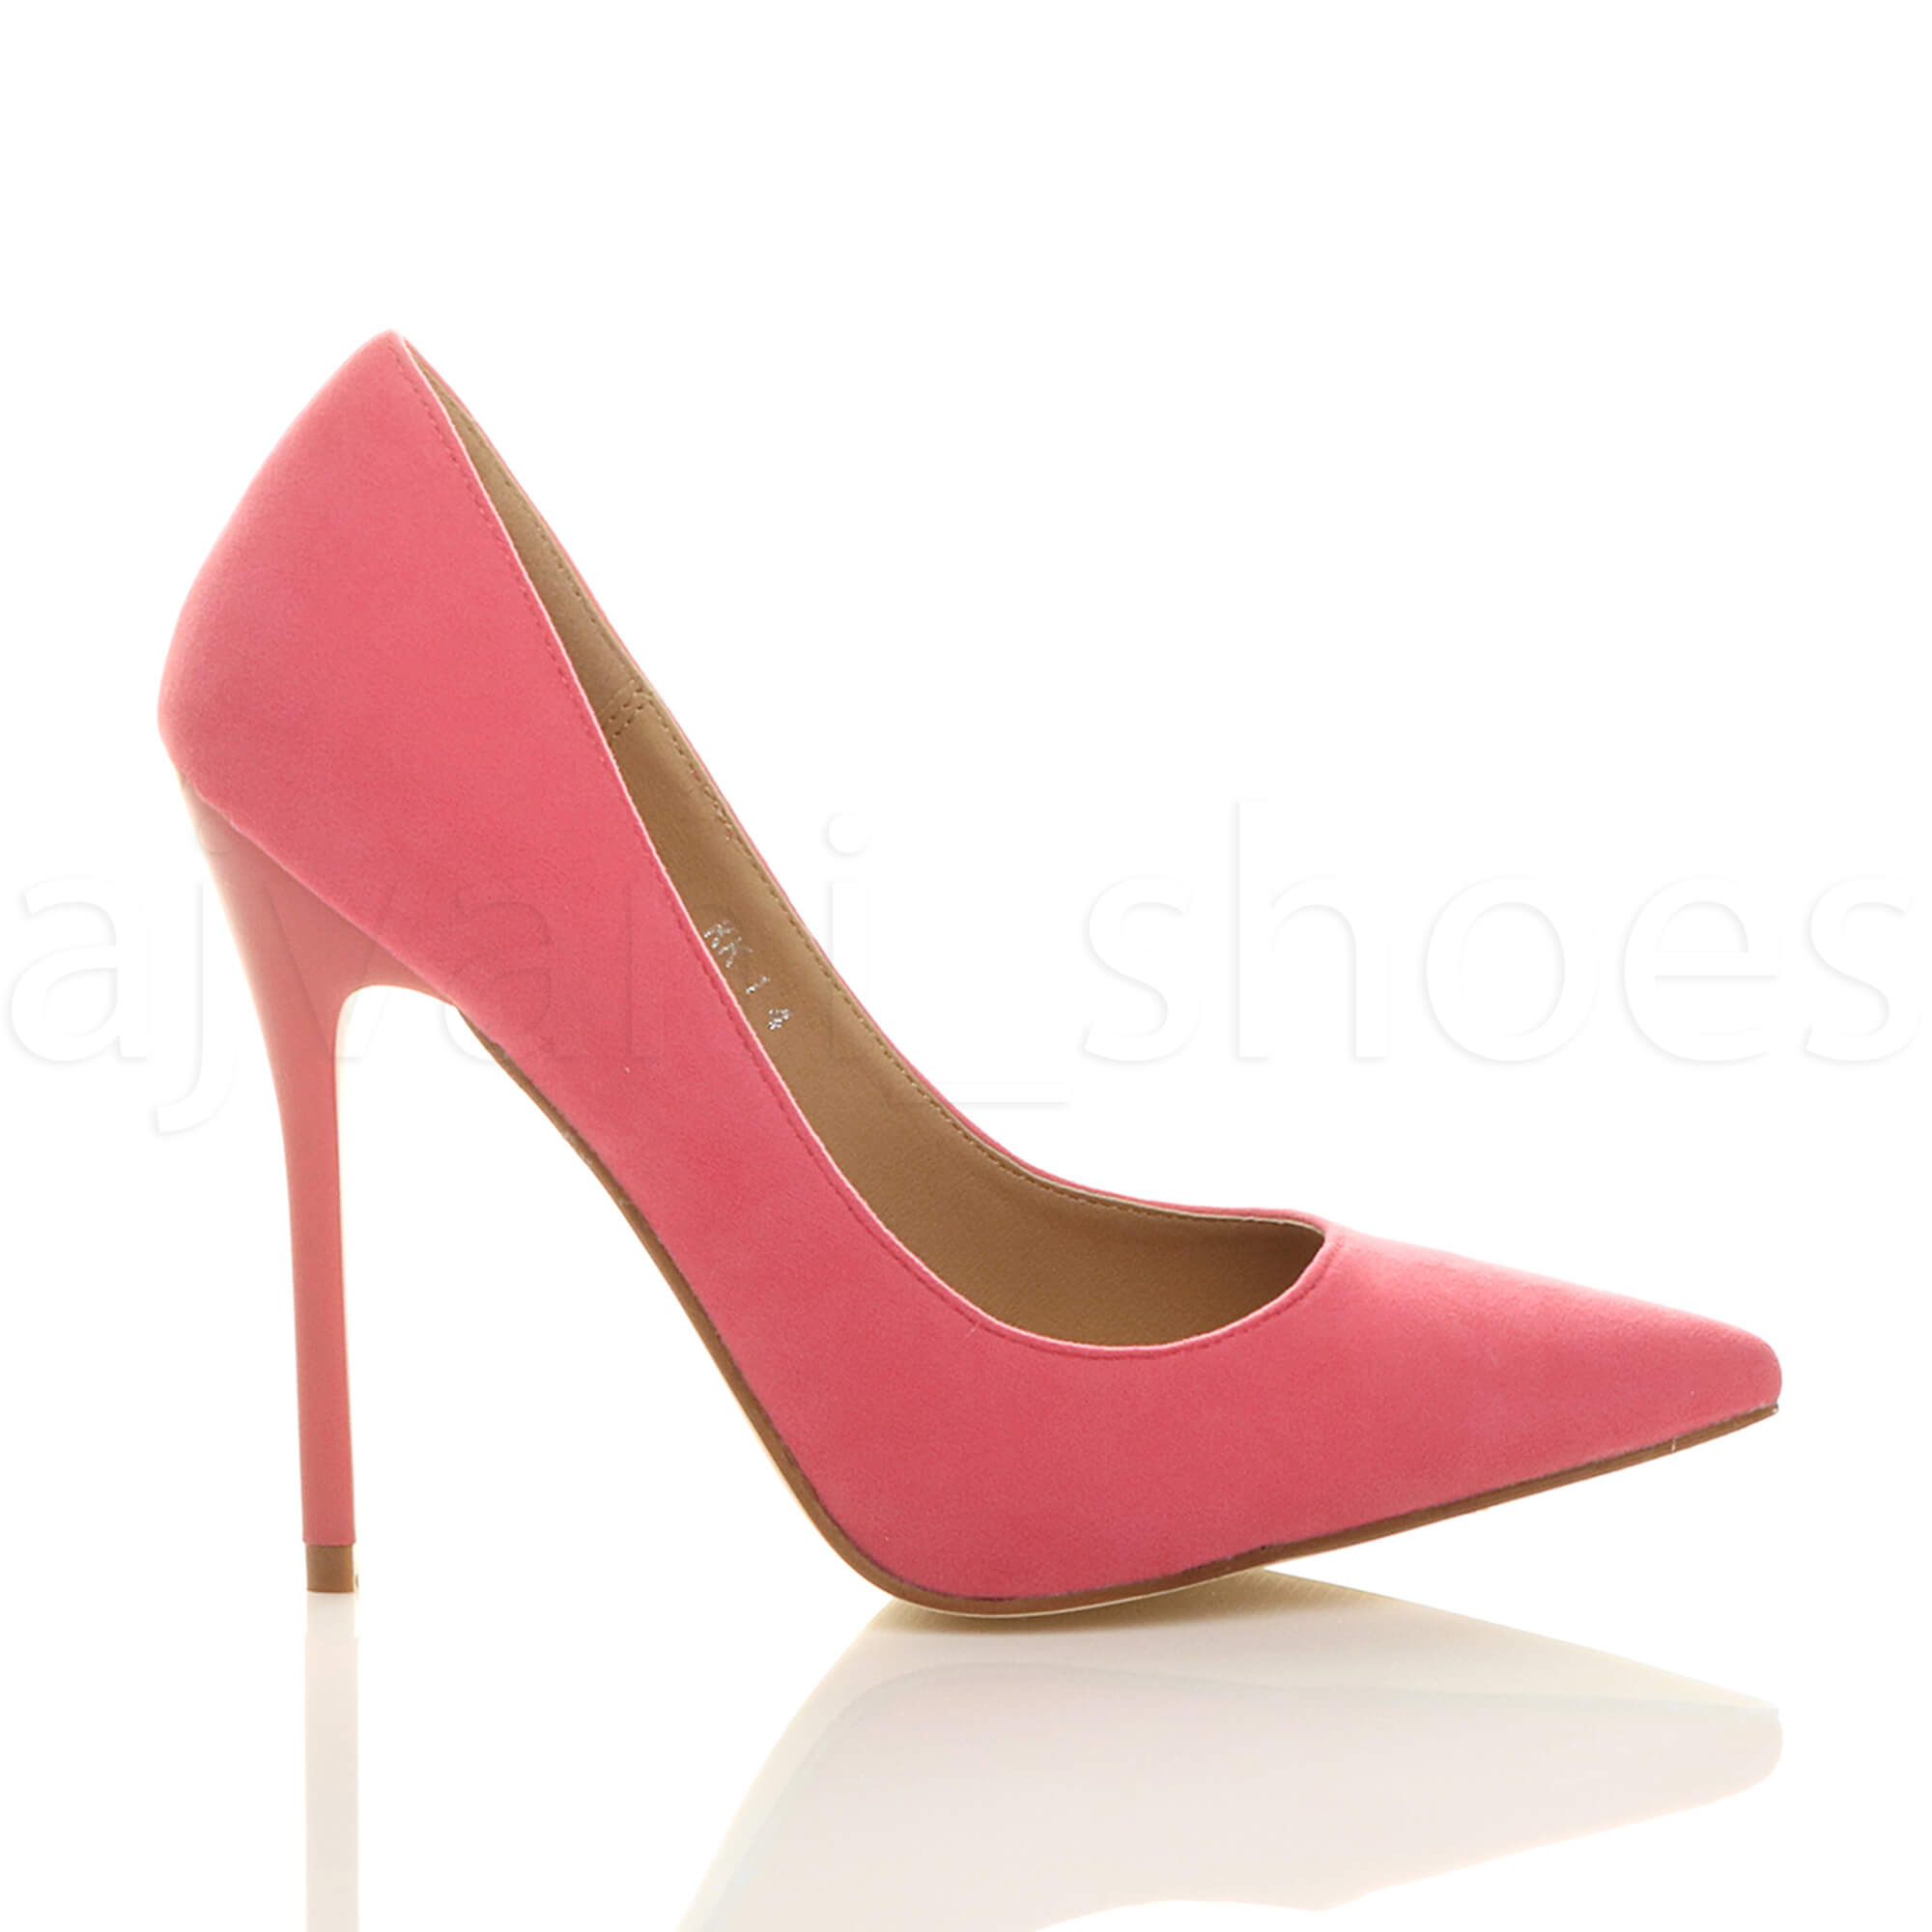 WOMENS-LADIES-HIGH-HEEL-POINTED-CONTRAST-COURT-SMART-PARTY-WORK-SHOES-PUMPS-SIZE thumbnail 137